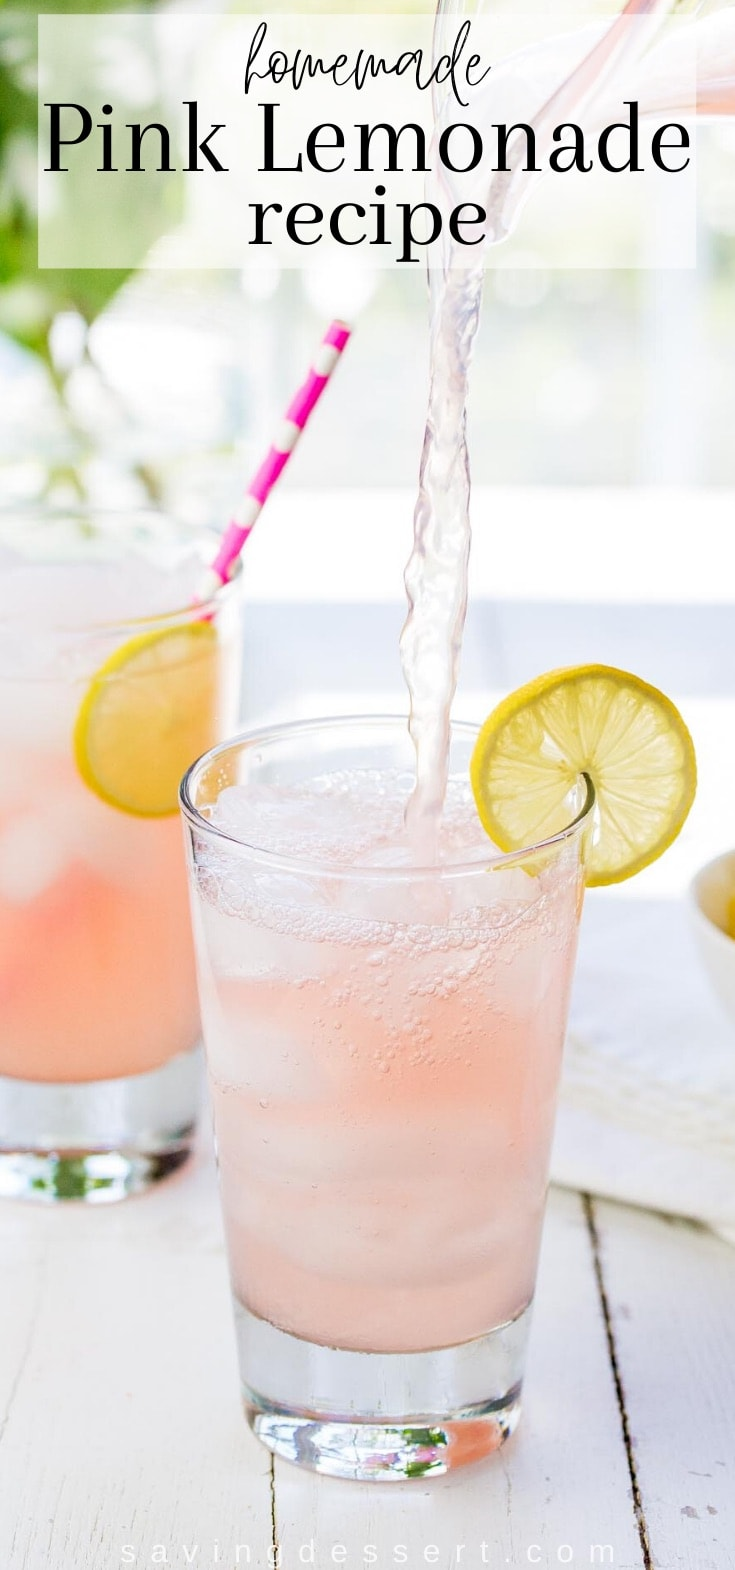 Two glasses of ice cold pink lemonade with lemon slices and a straw